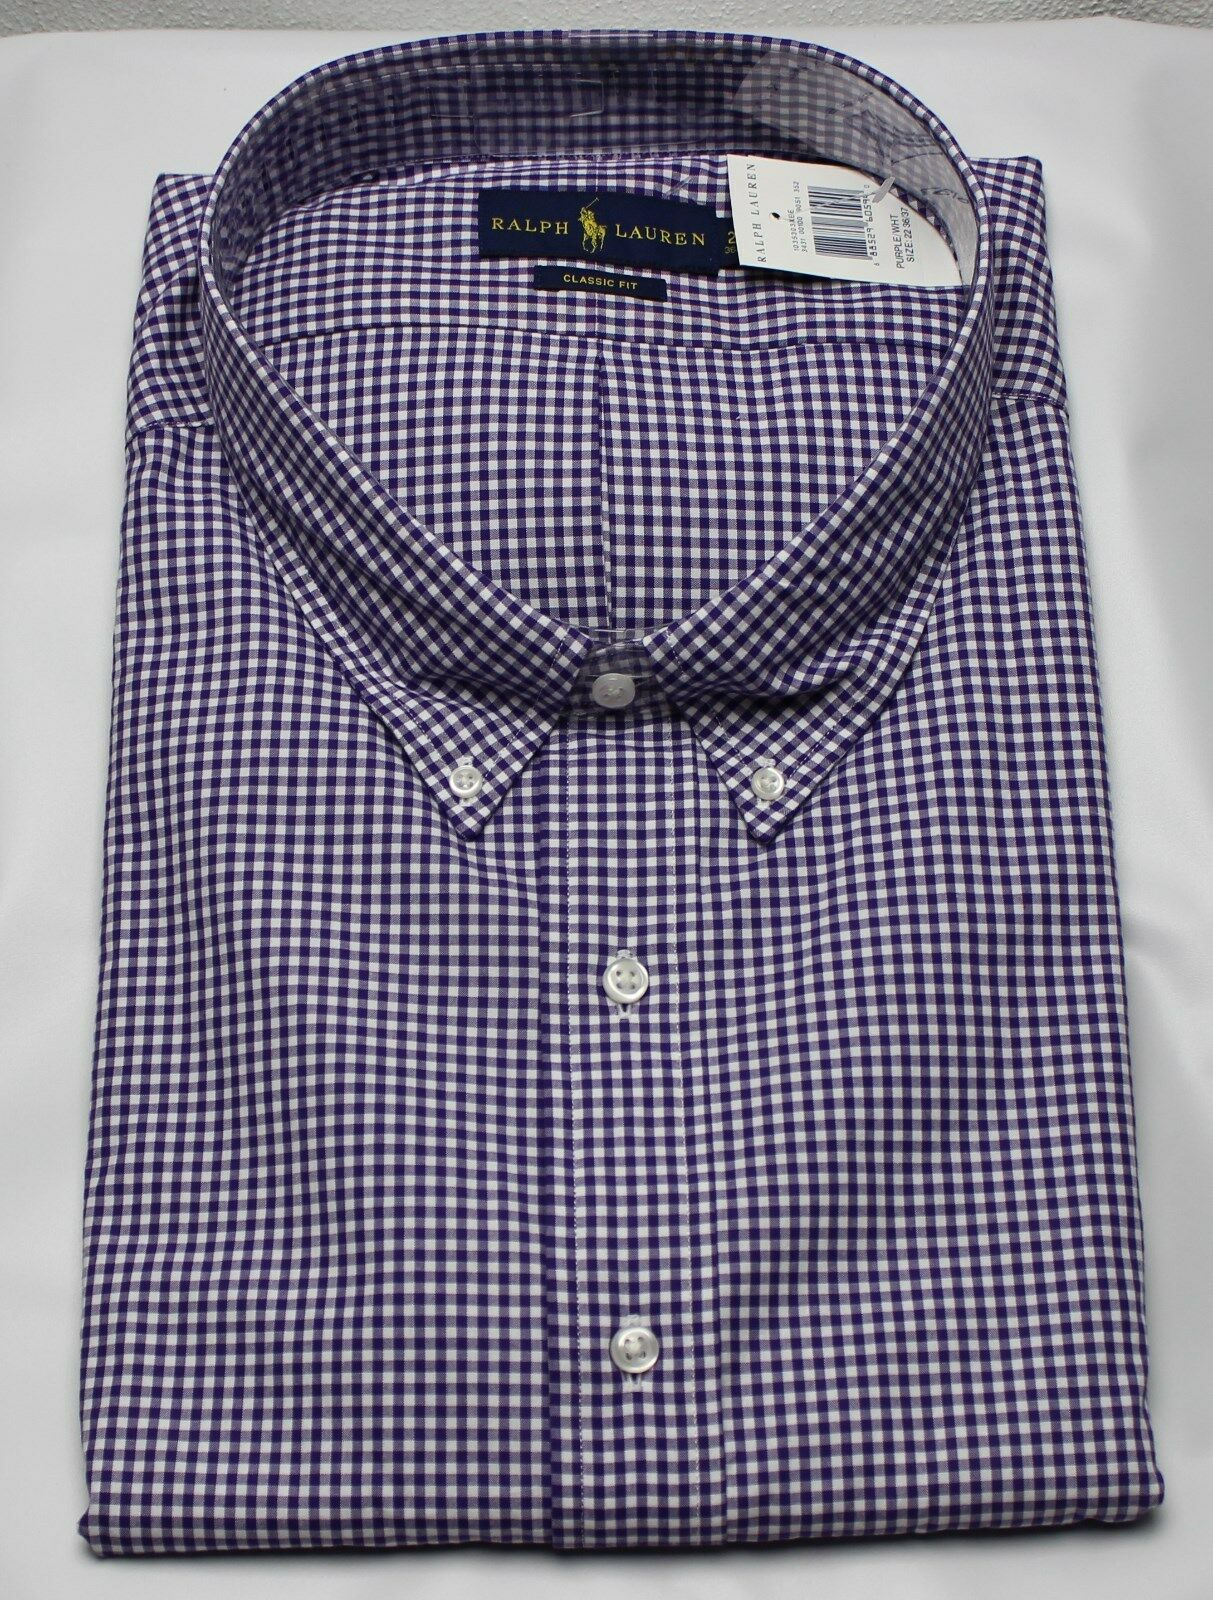 Polo Ralph Lauren Dress Shirt Mens 21 34 35 Classic Fit Purple White Green Pony